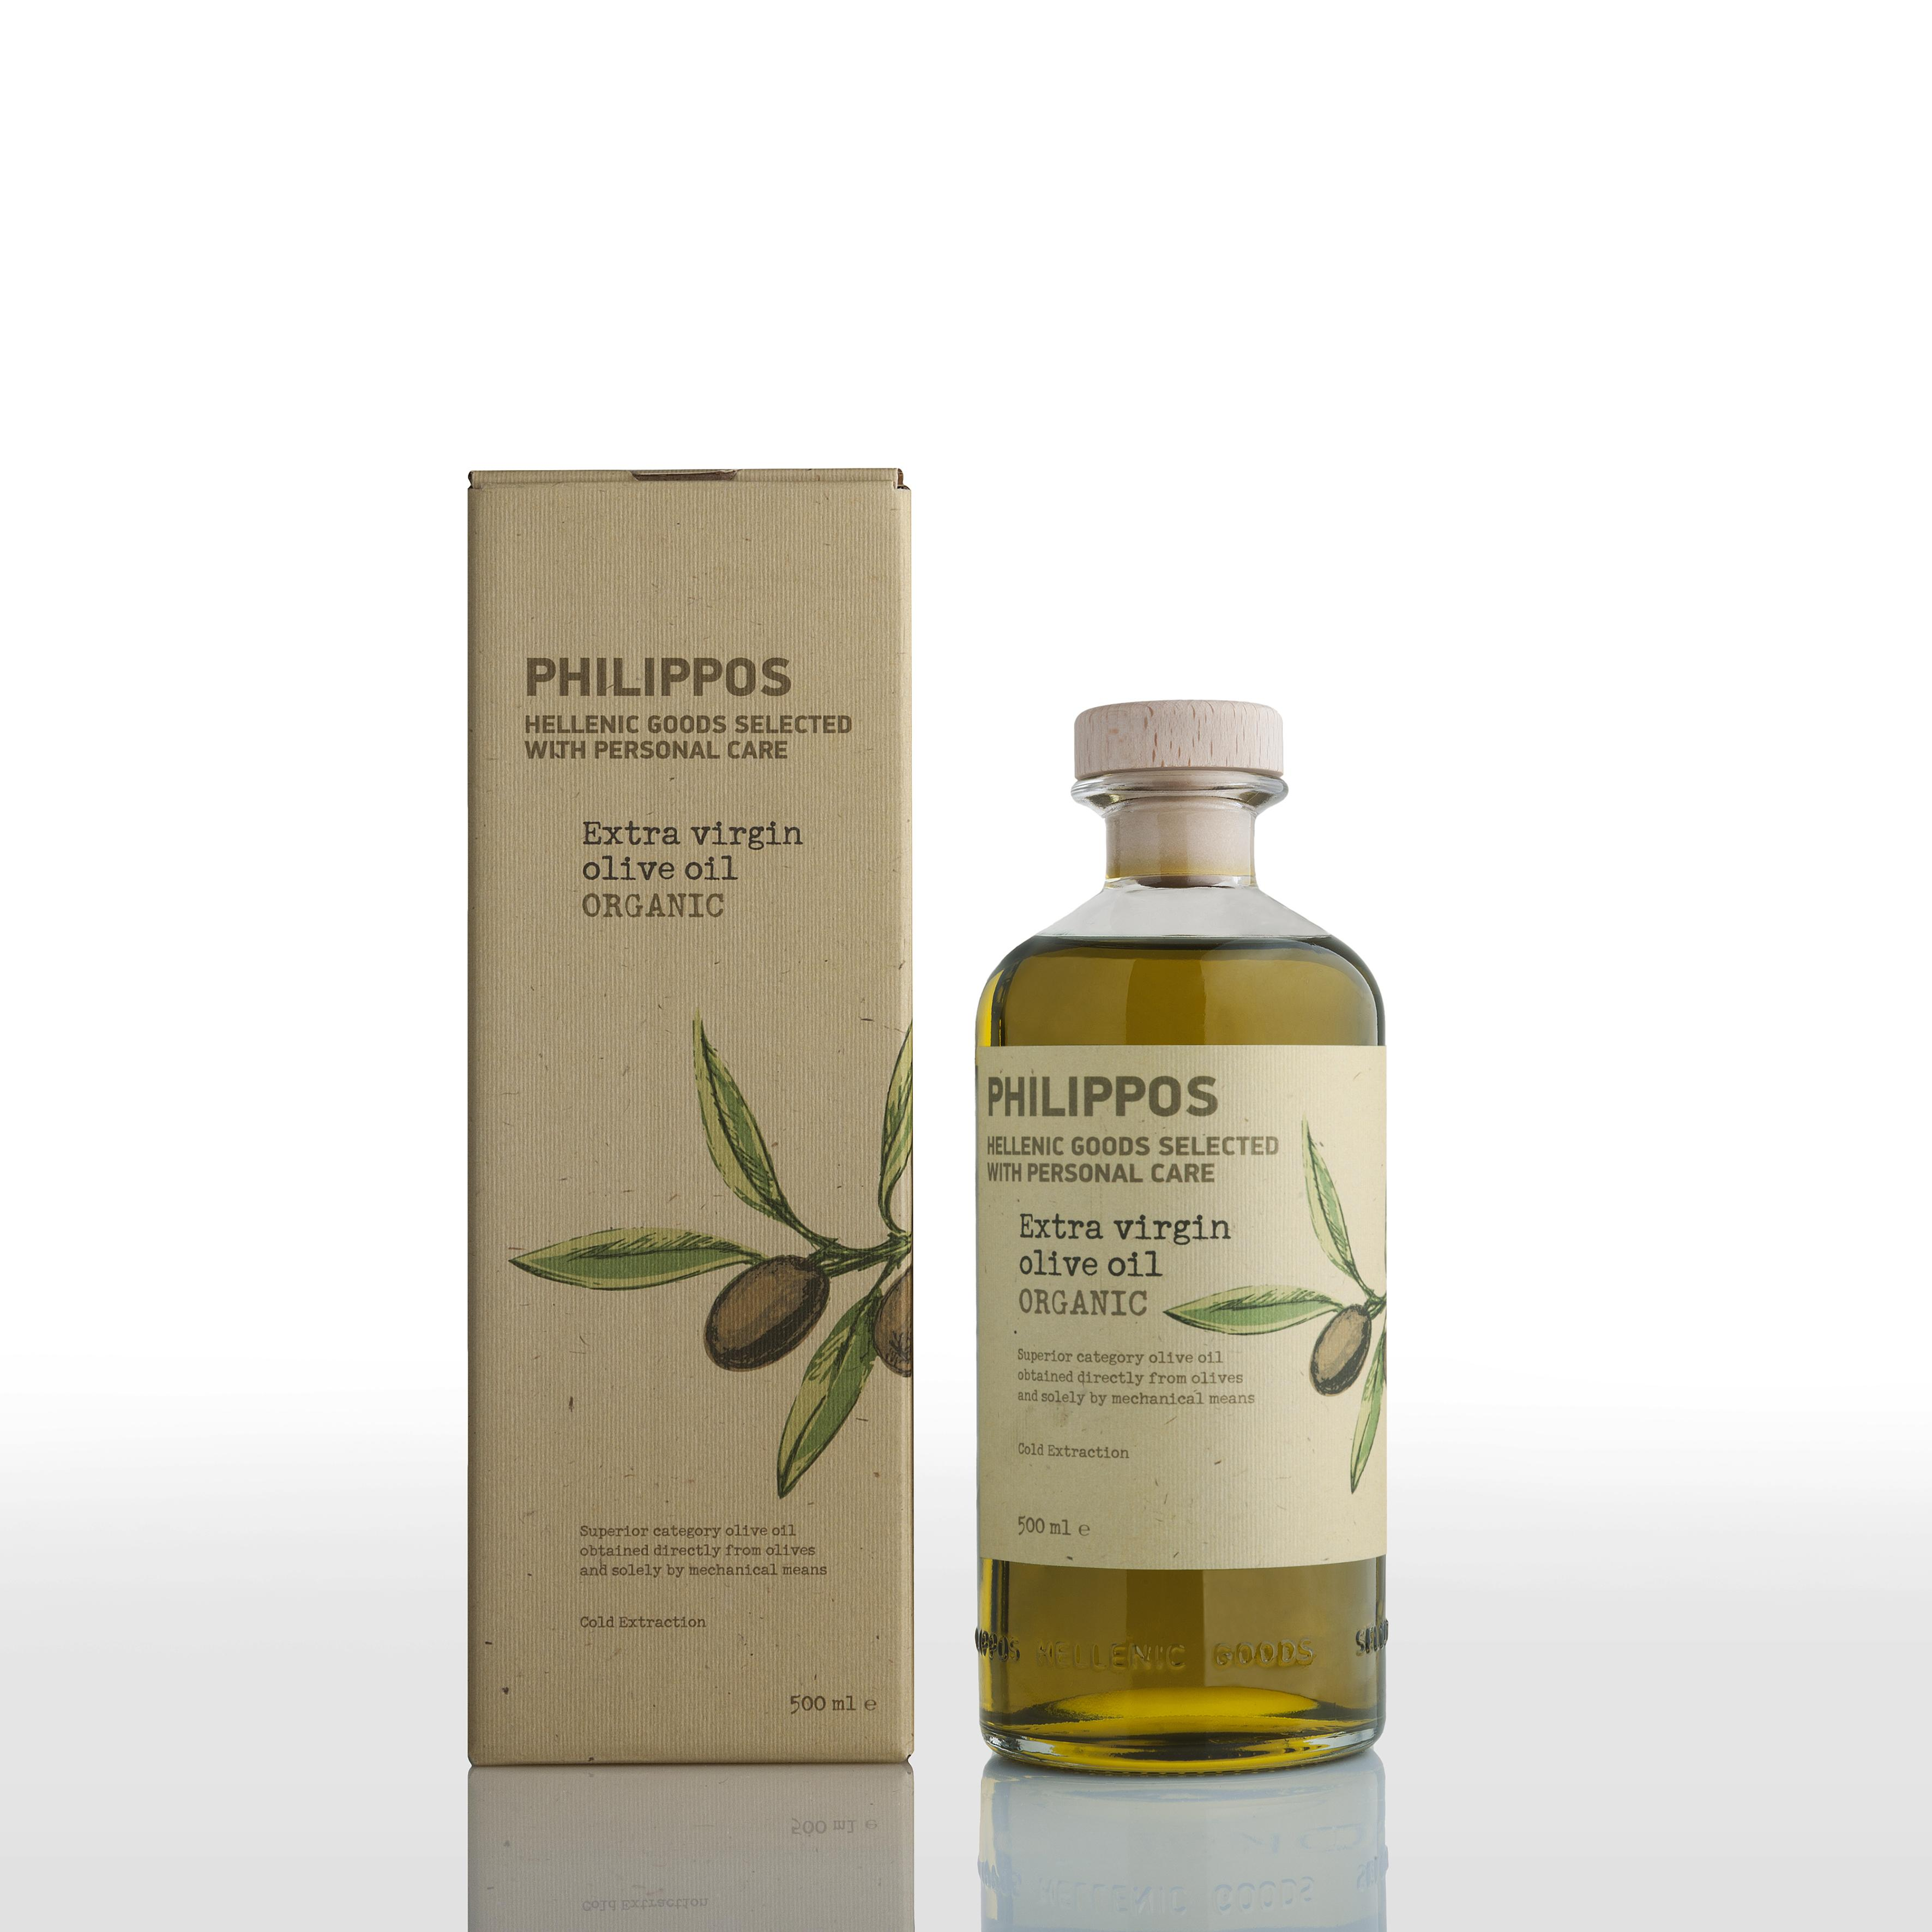 PHILIPPOS ORGANIC Extra Virgin Olive Oil 500ml